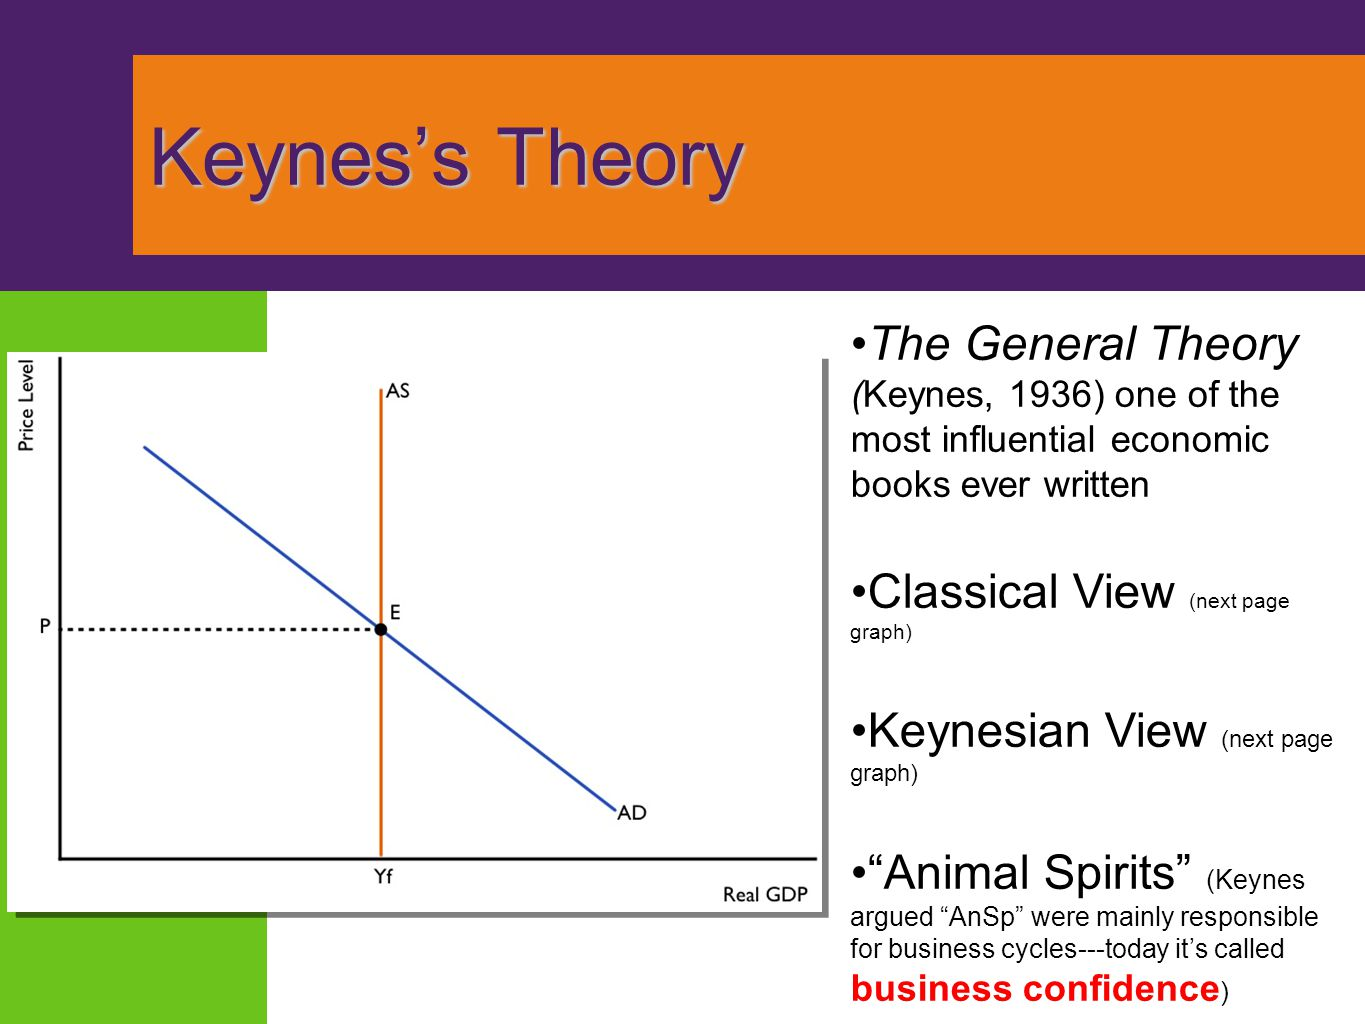 Keynes's Theory The General Theory (Keynes, 1936) one of the most influential economic books ever written.